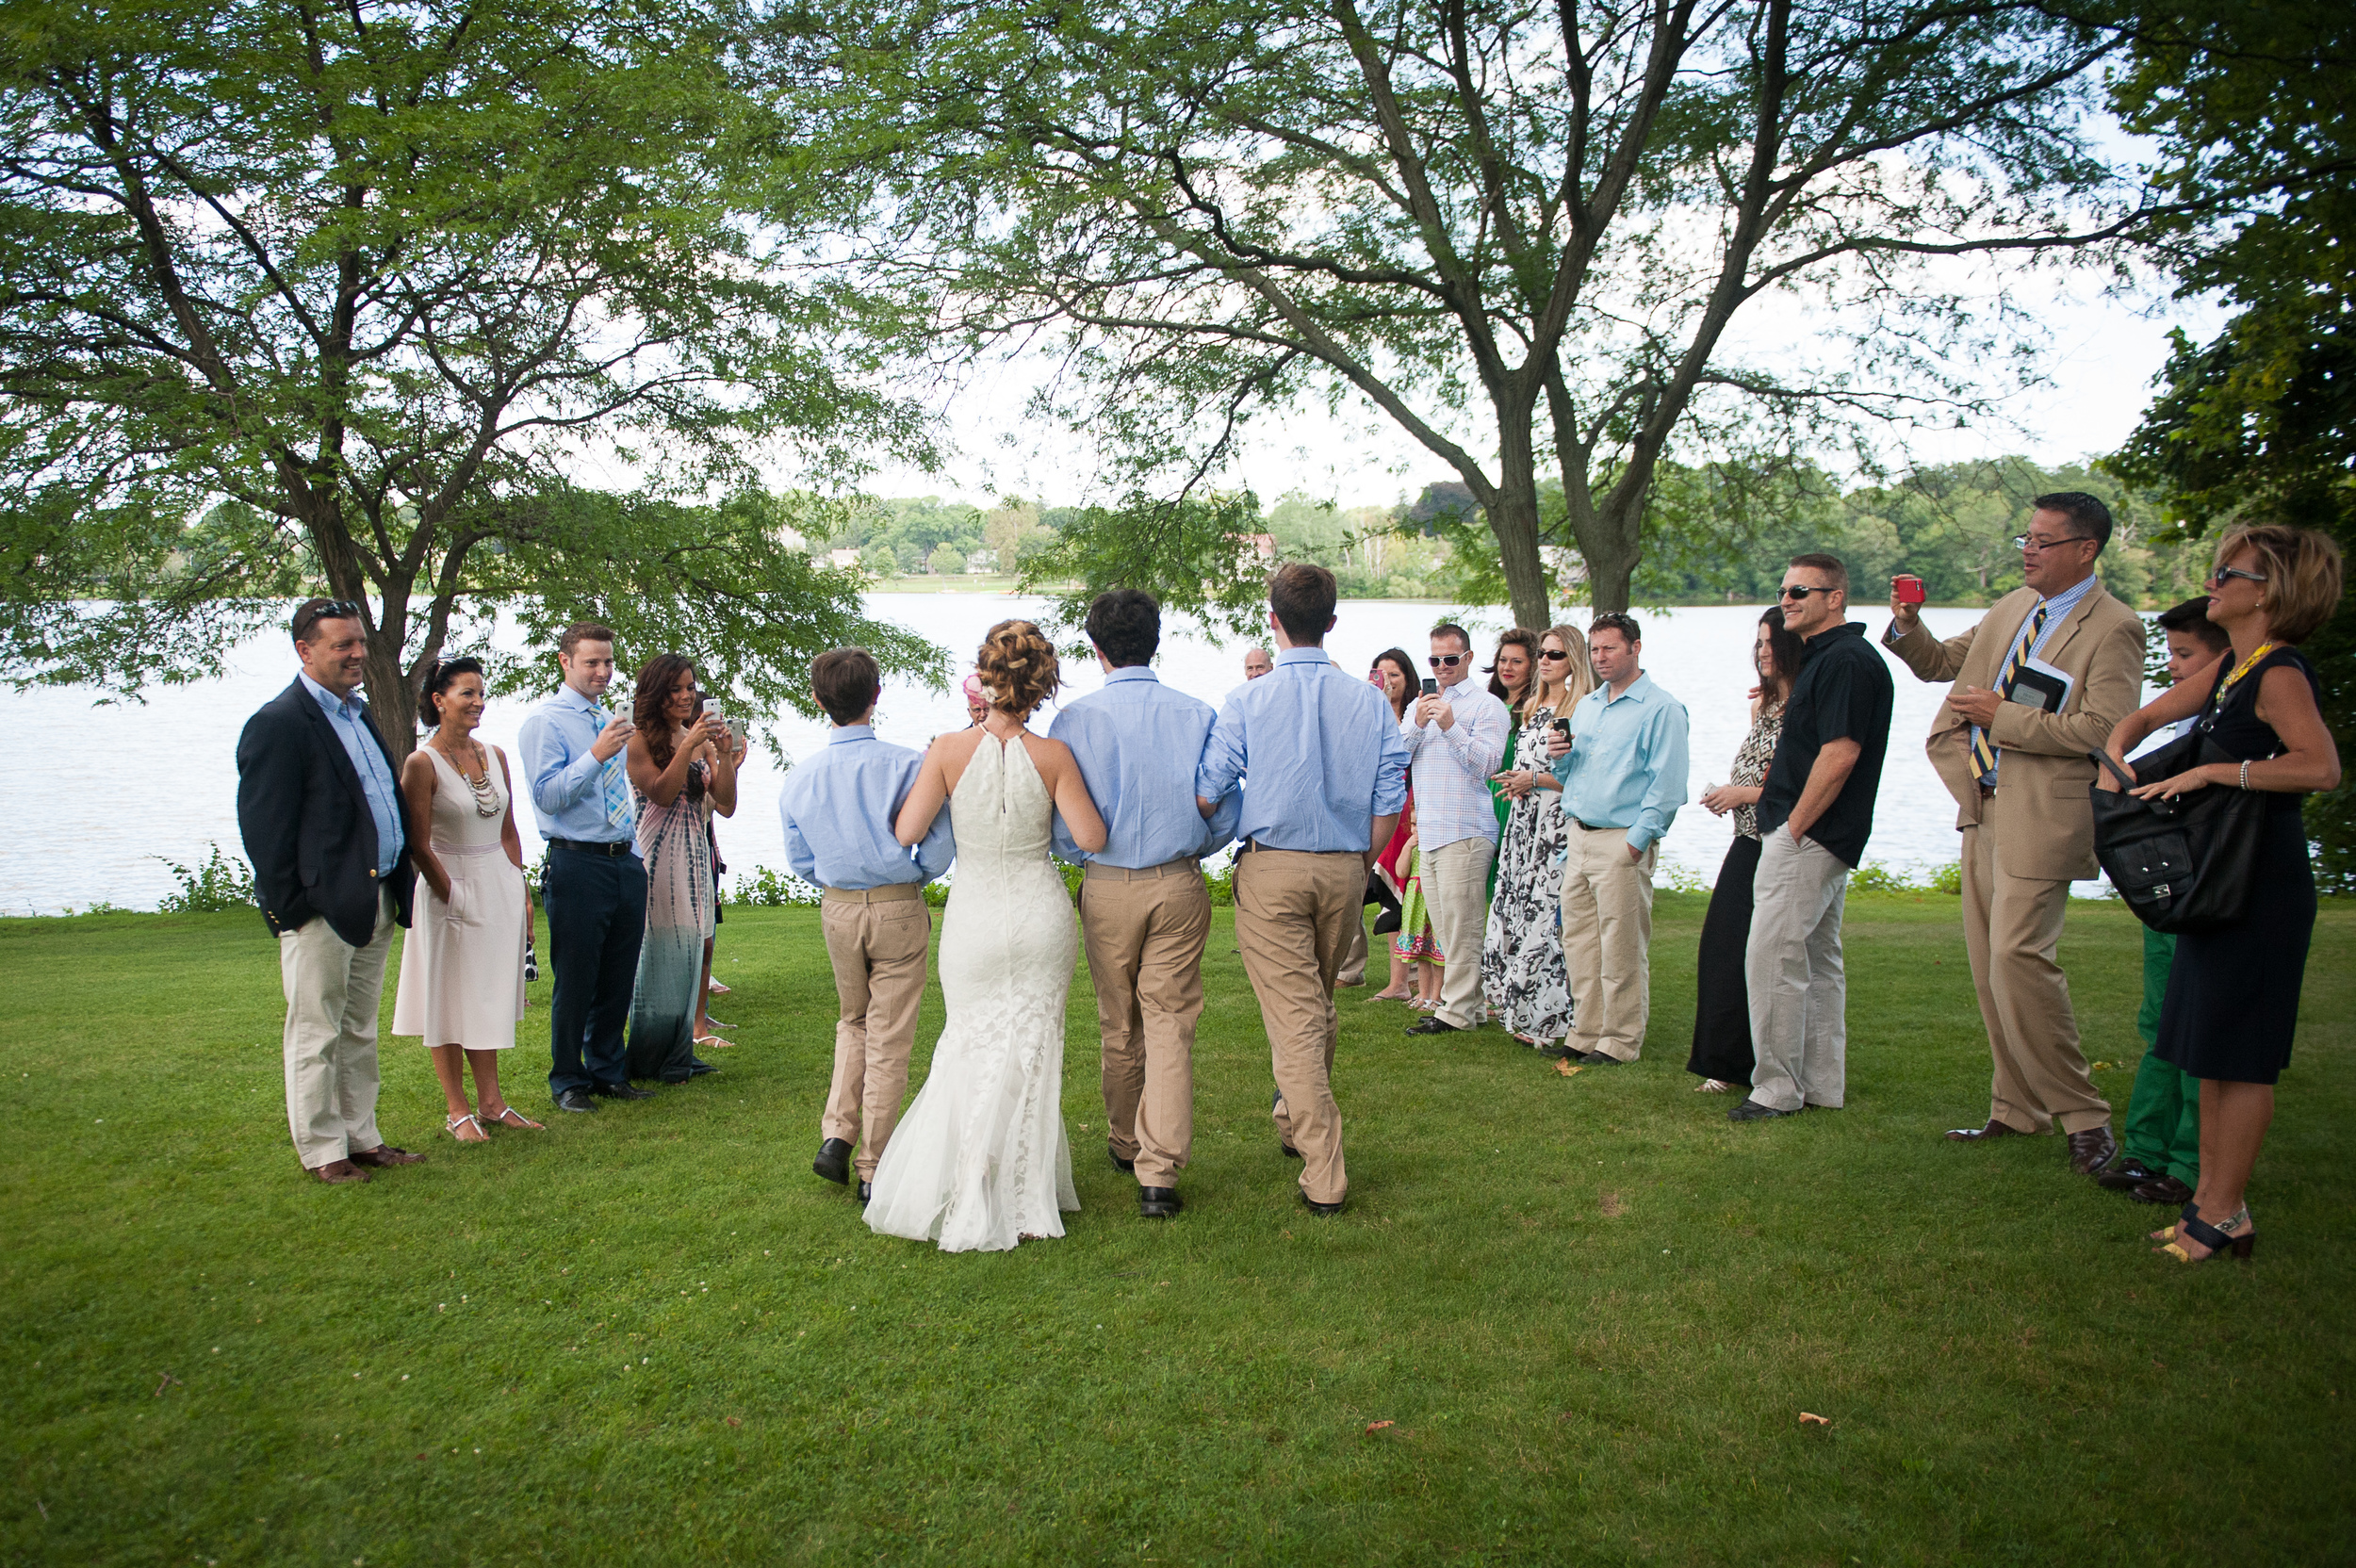 Bride escorted by three sons small park wedding Wakefield MA photographer